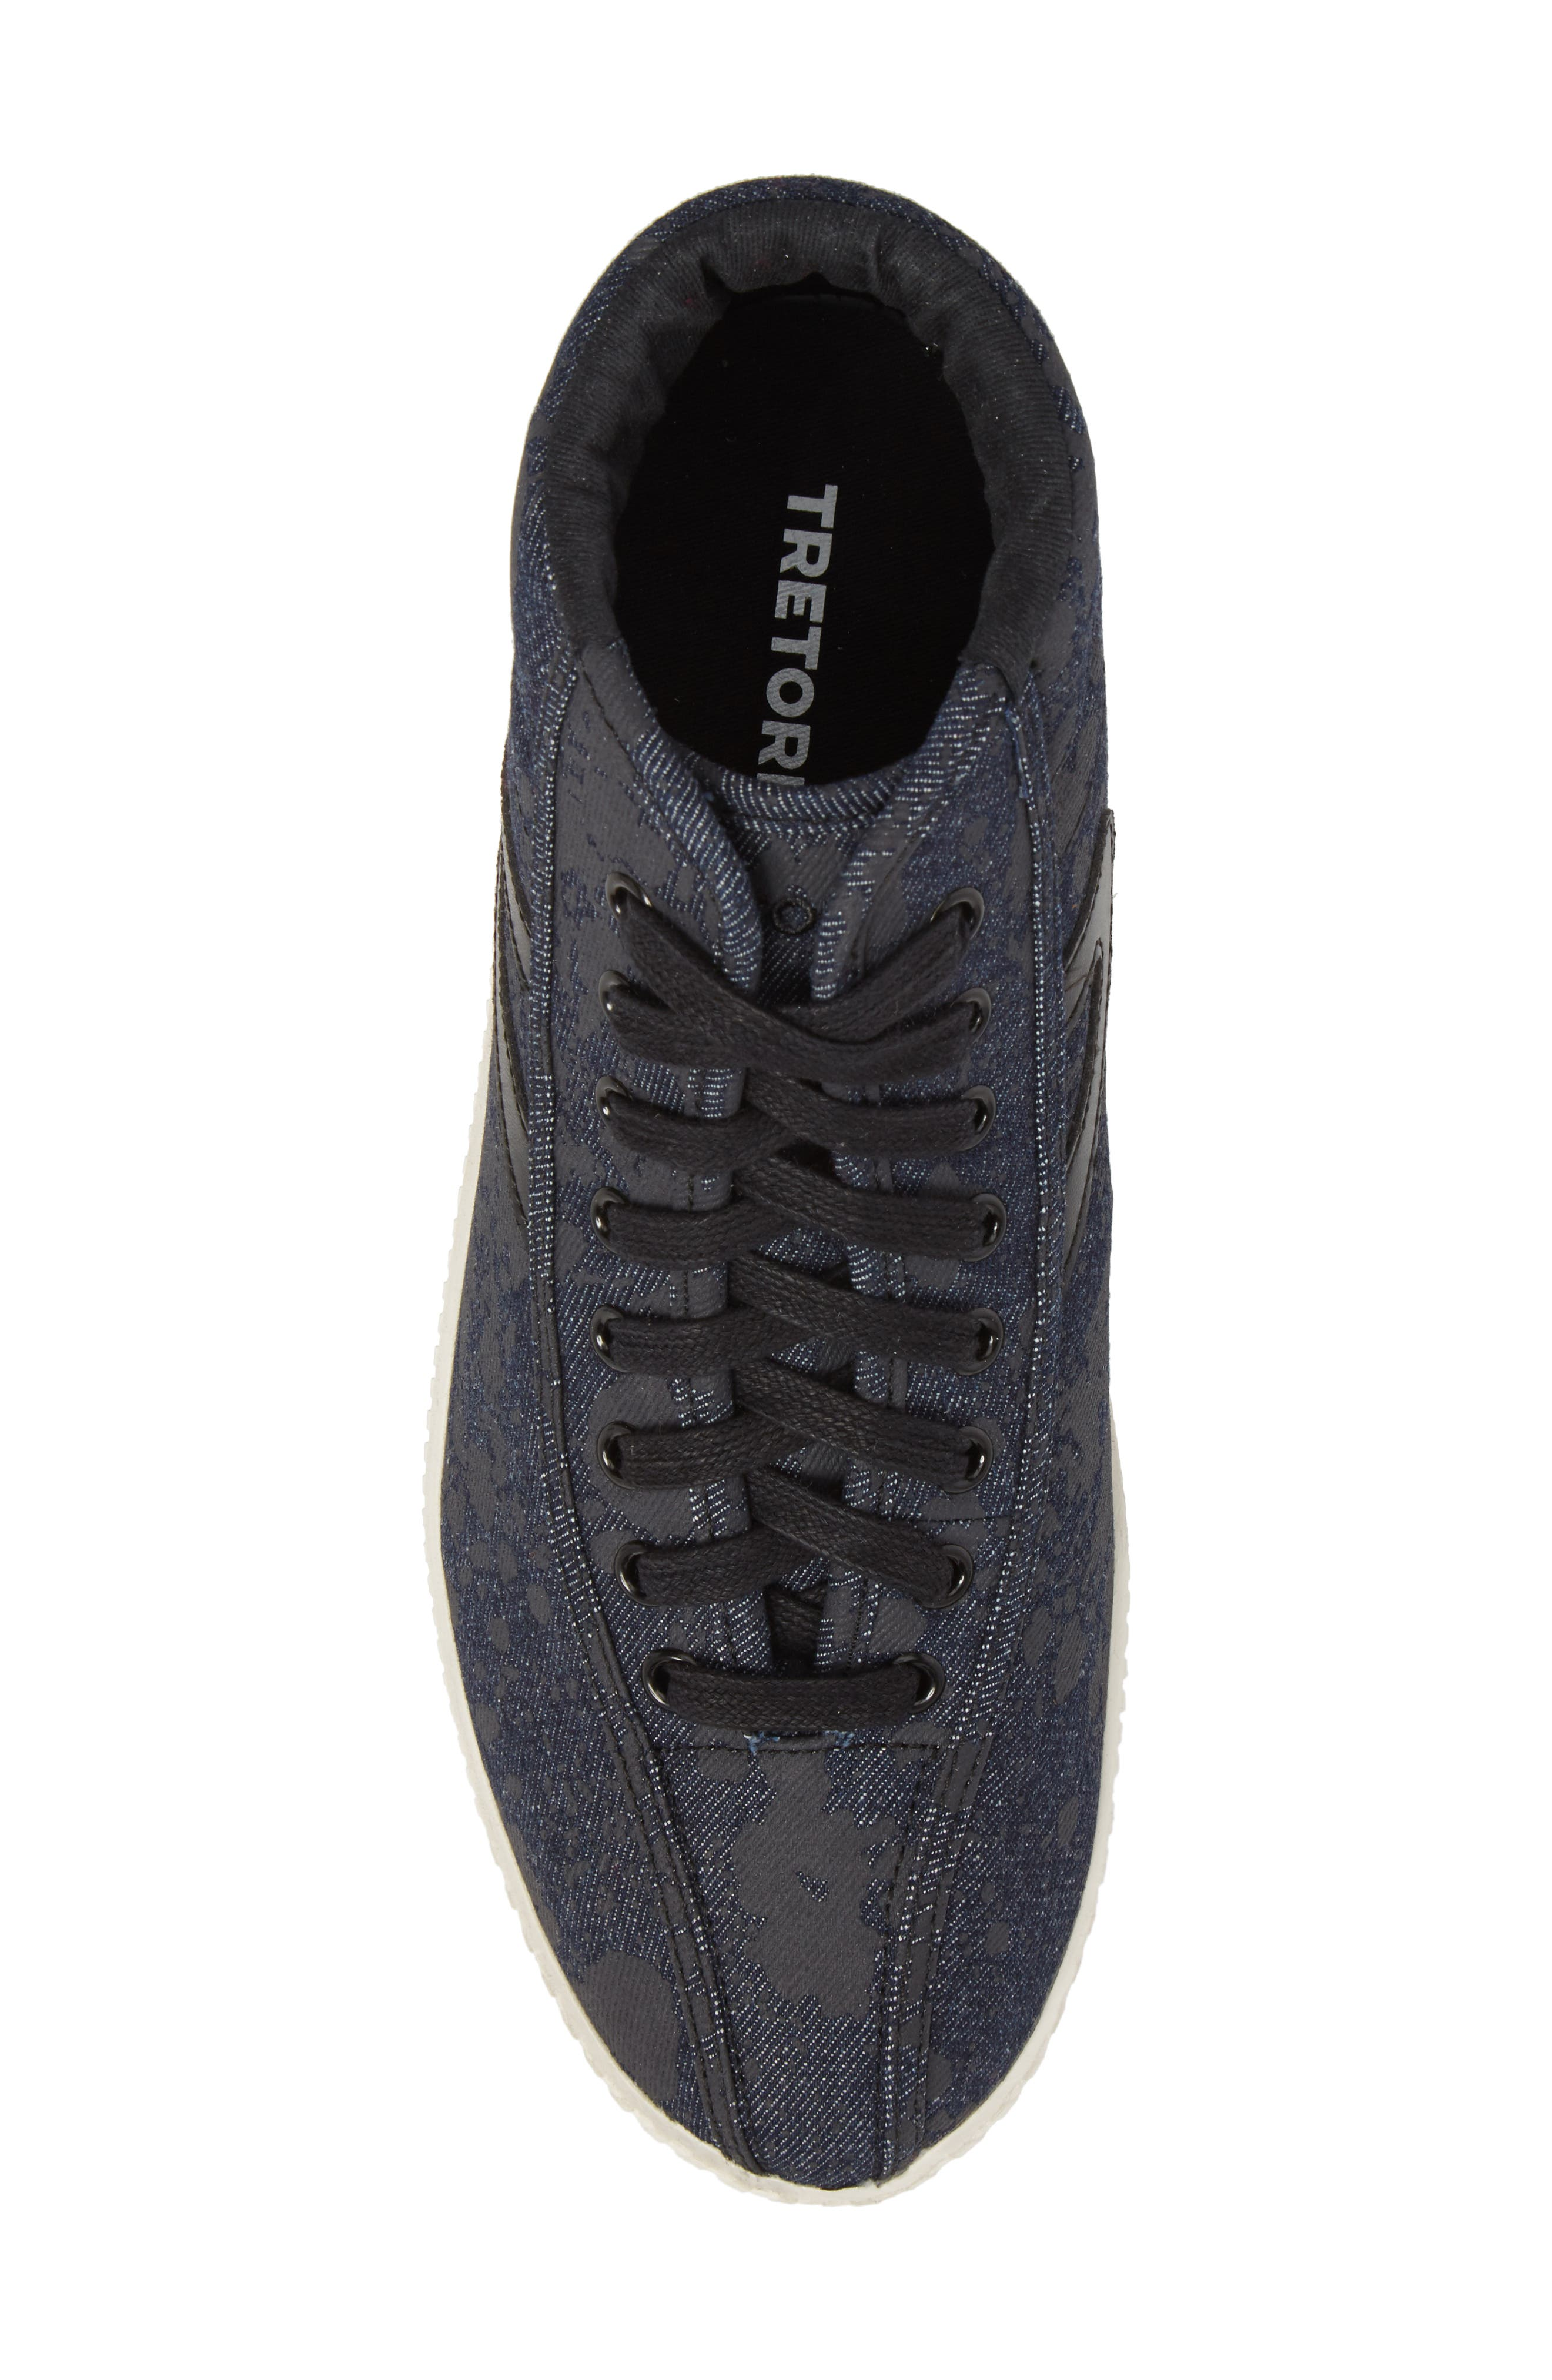 Nylite High Top Sneaker,                             Alternate thumbnail 5, color,                             001